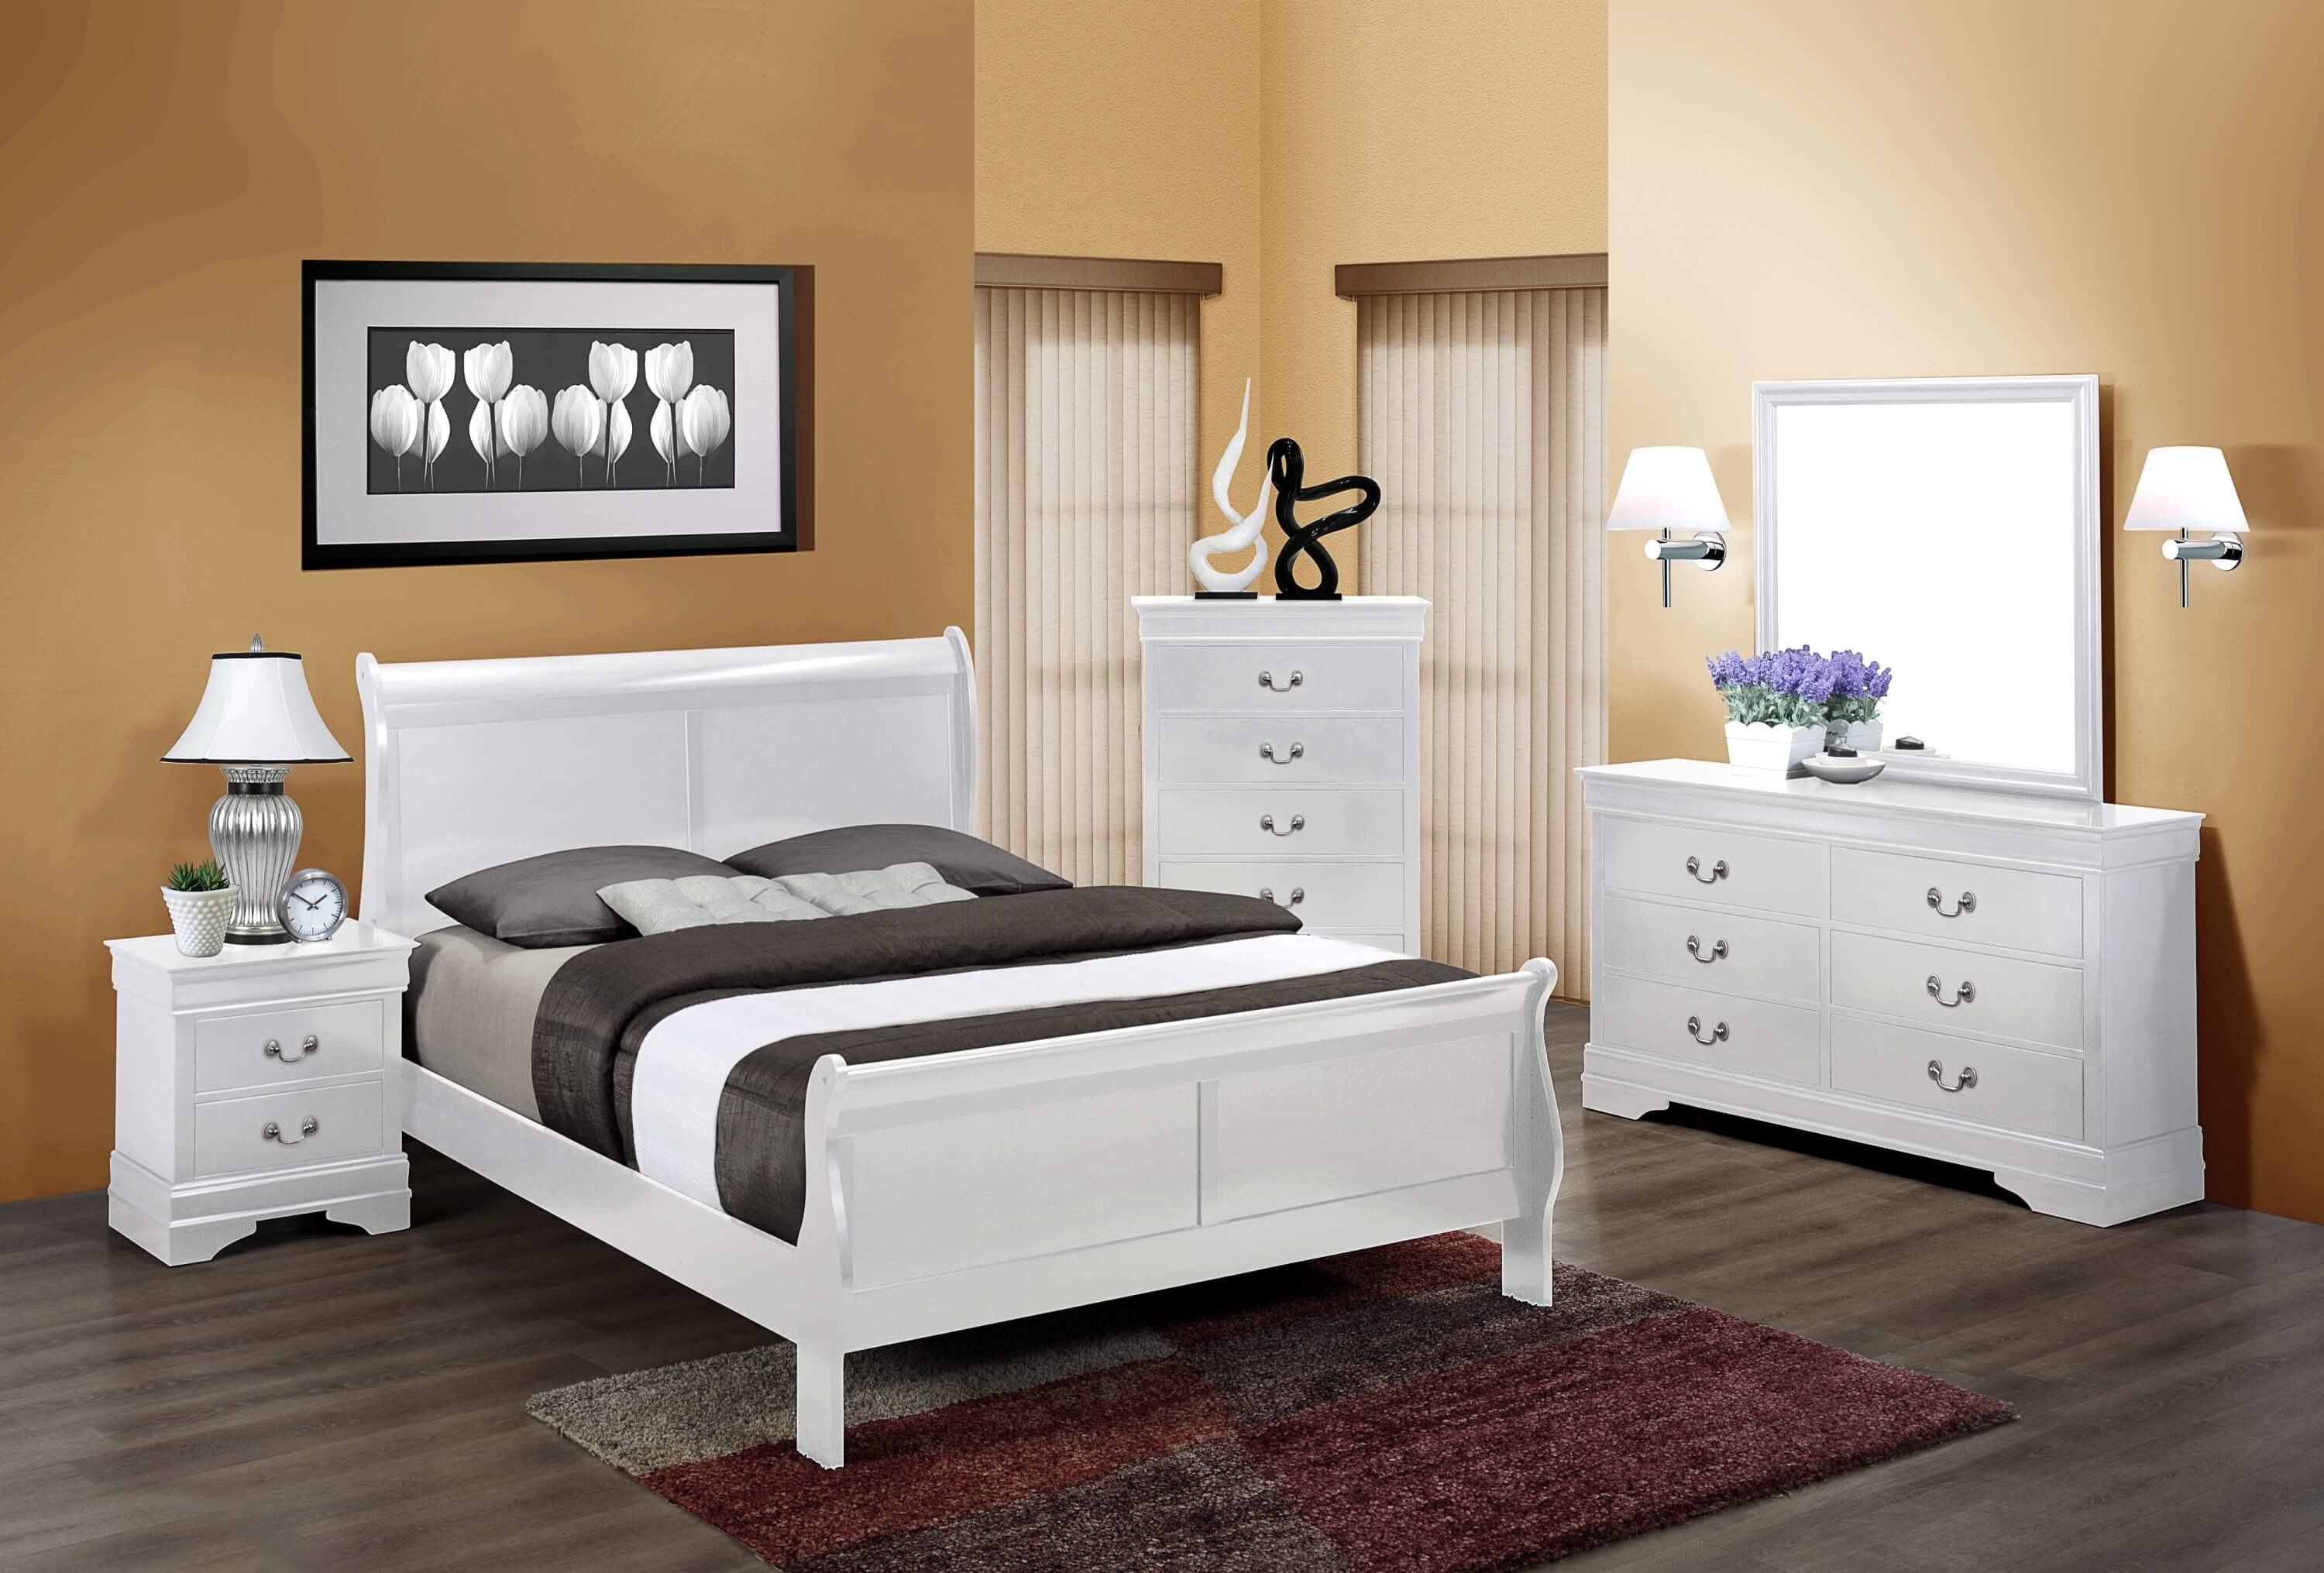 white louis philip bedroom set bedroom furniture sets 11164 | cmeb3600